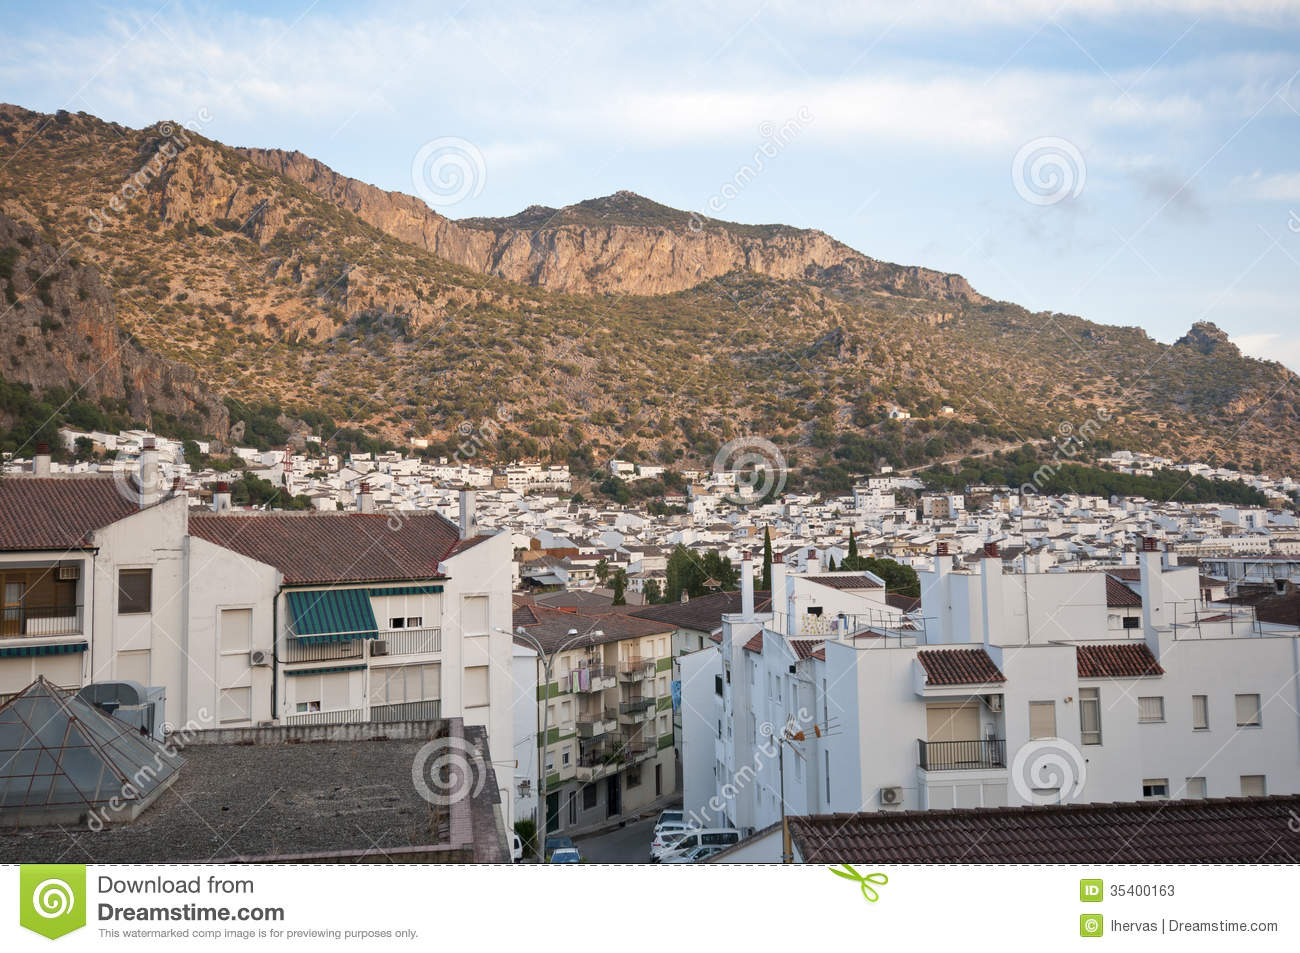 Stock Photos Views Ubrique Cadiz Village Part Pueblos Blancos White Towns Southern Spain Andalusia Region Reminds Image35400163 likewise Sun Valley Ivanka Trump Jared Kushner 1202495235 additionally Small Cabin Plan together with Star Wars Like Robotic Security Patrol moreover Pools. on mountain home plans